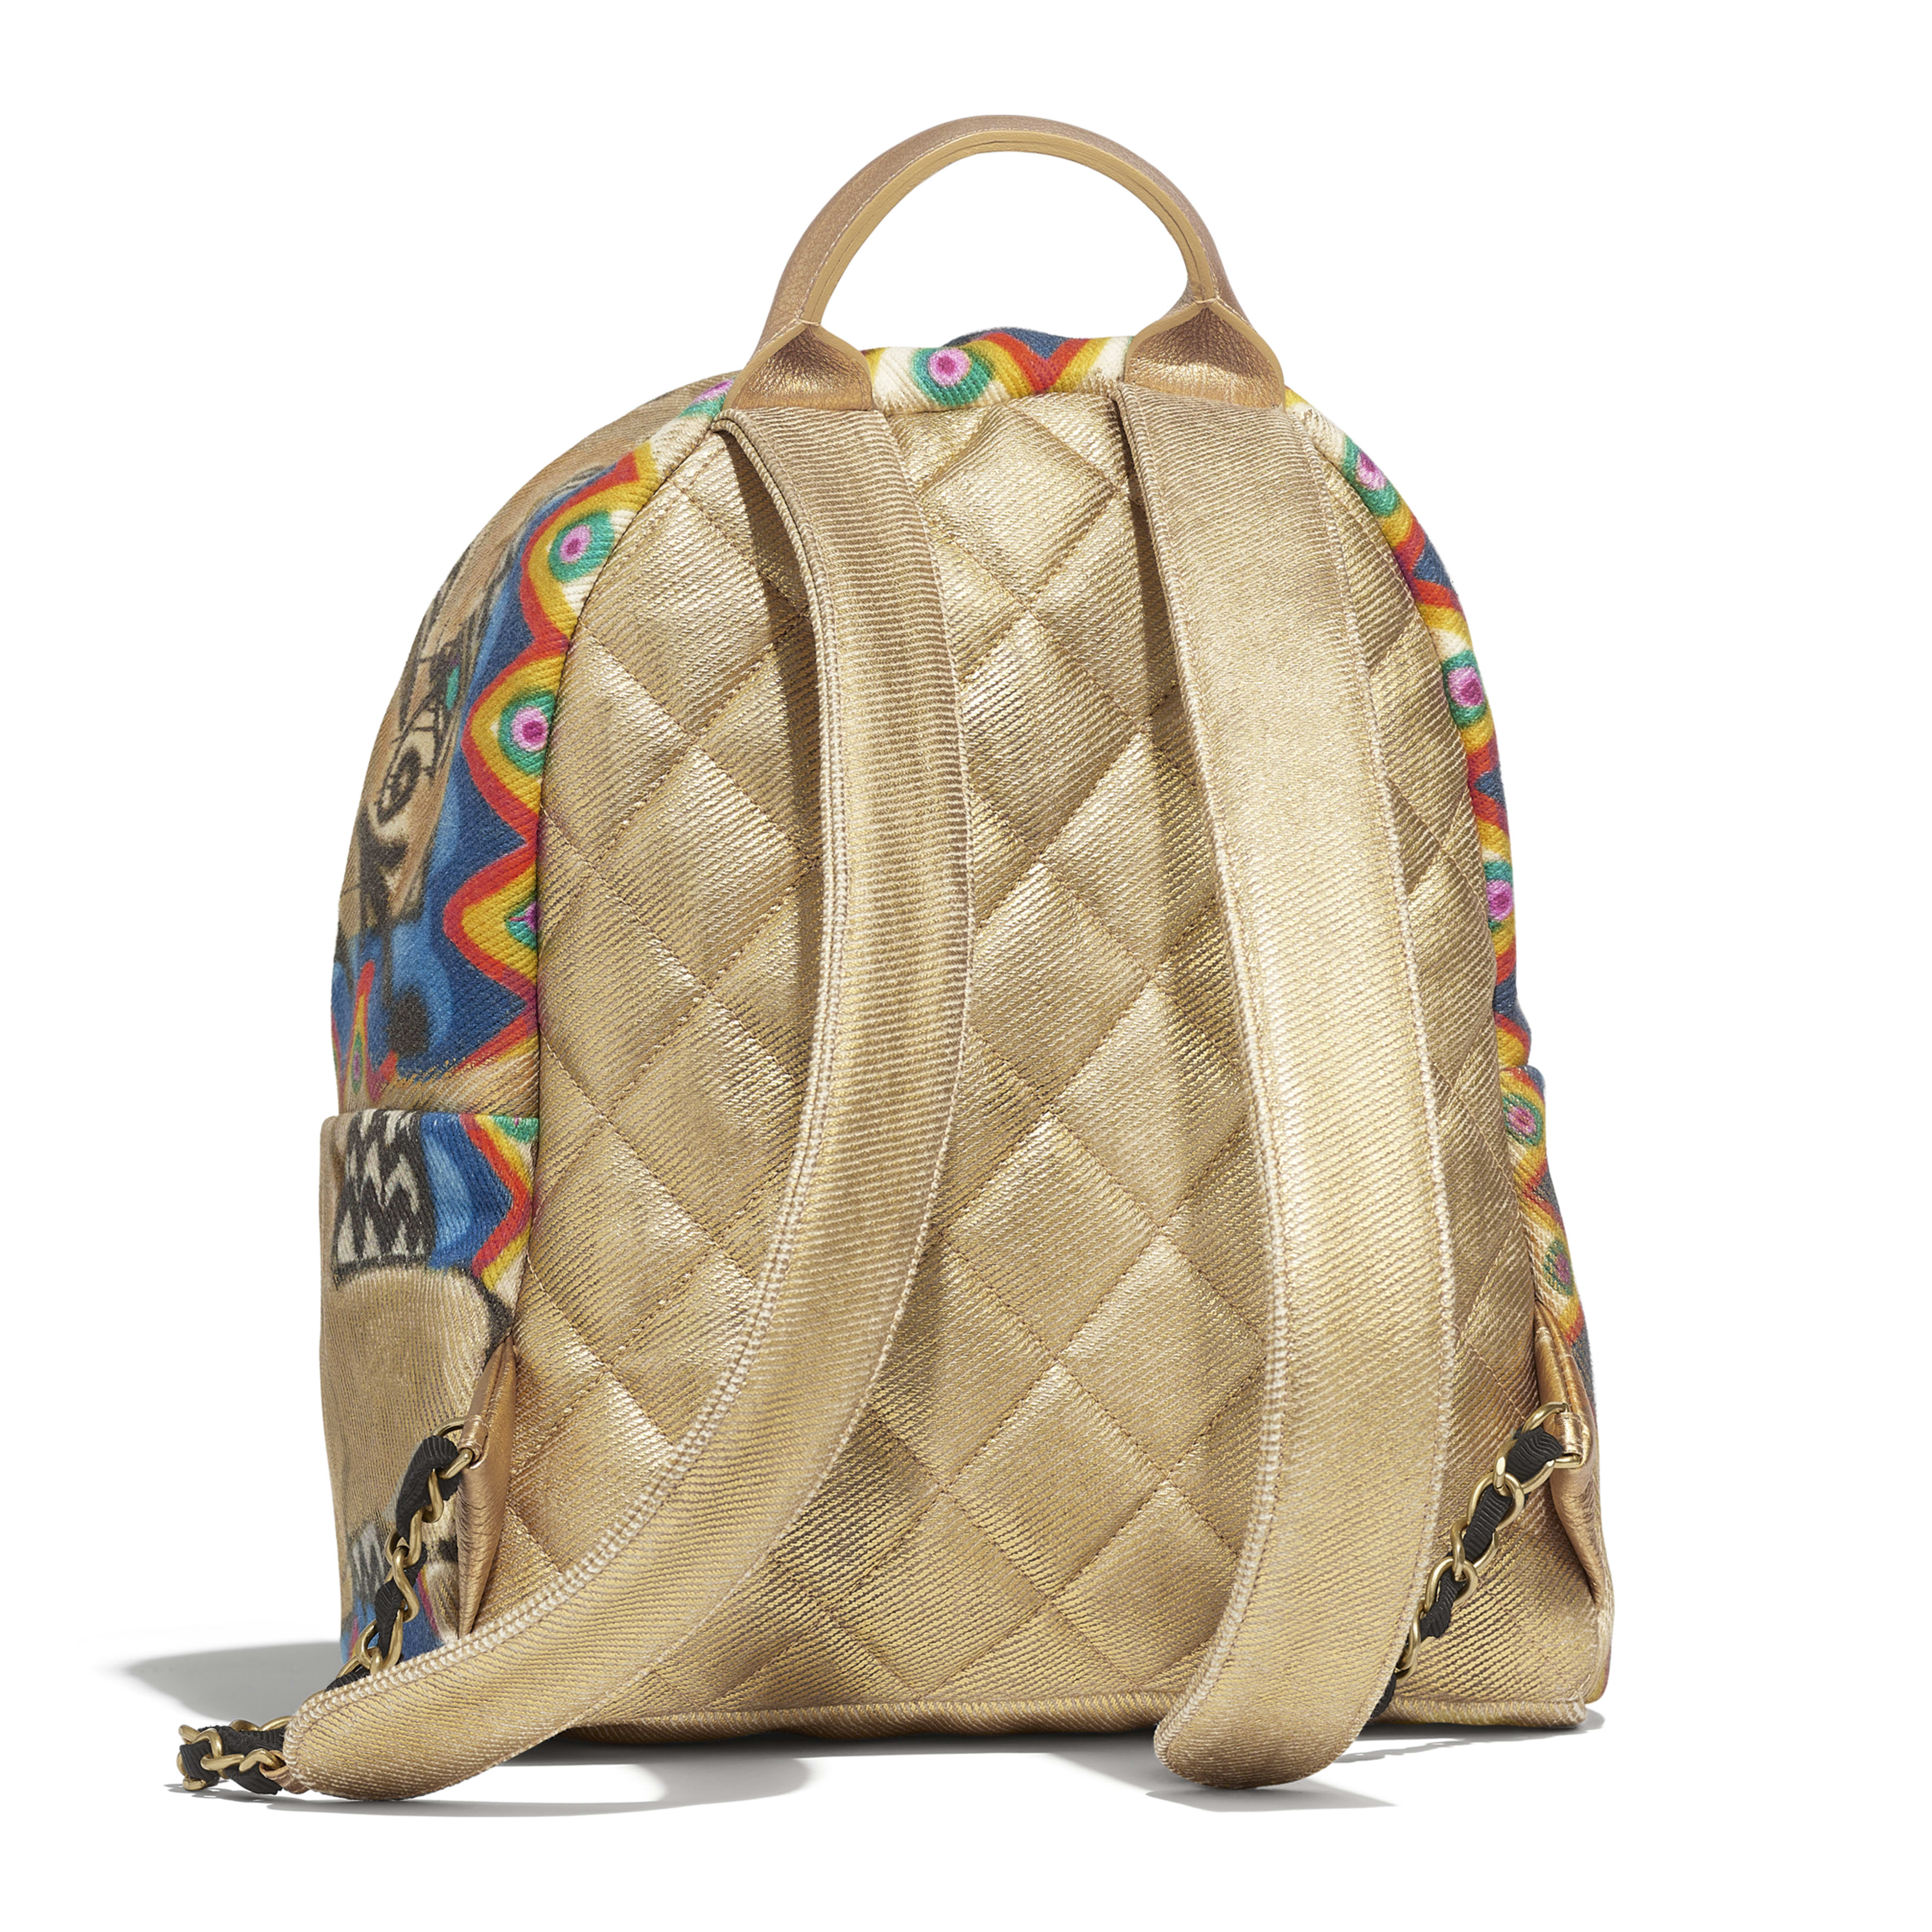 Backpack - Multicolor - Calfskin, Cotton & Gold-Tone Metal - Alternative view - see full sized version